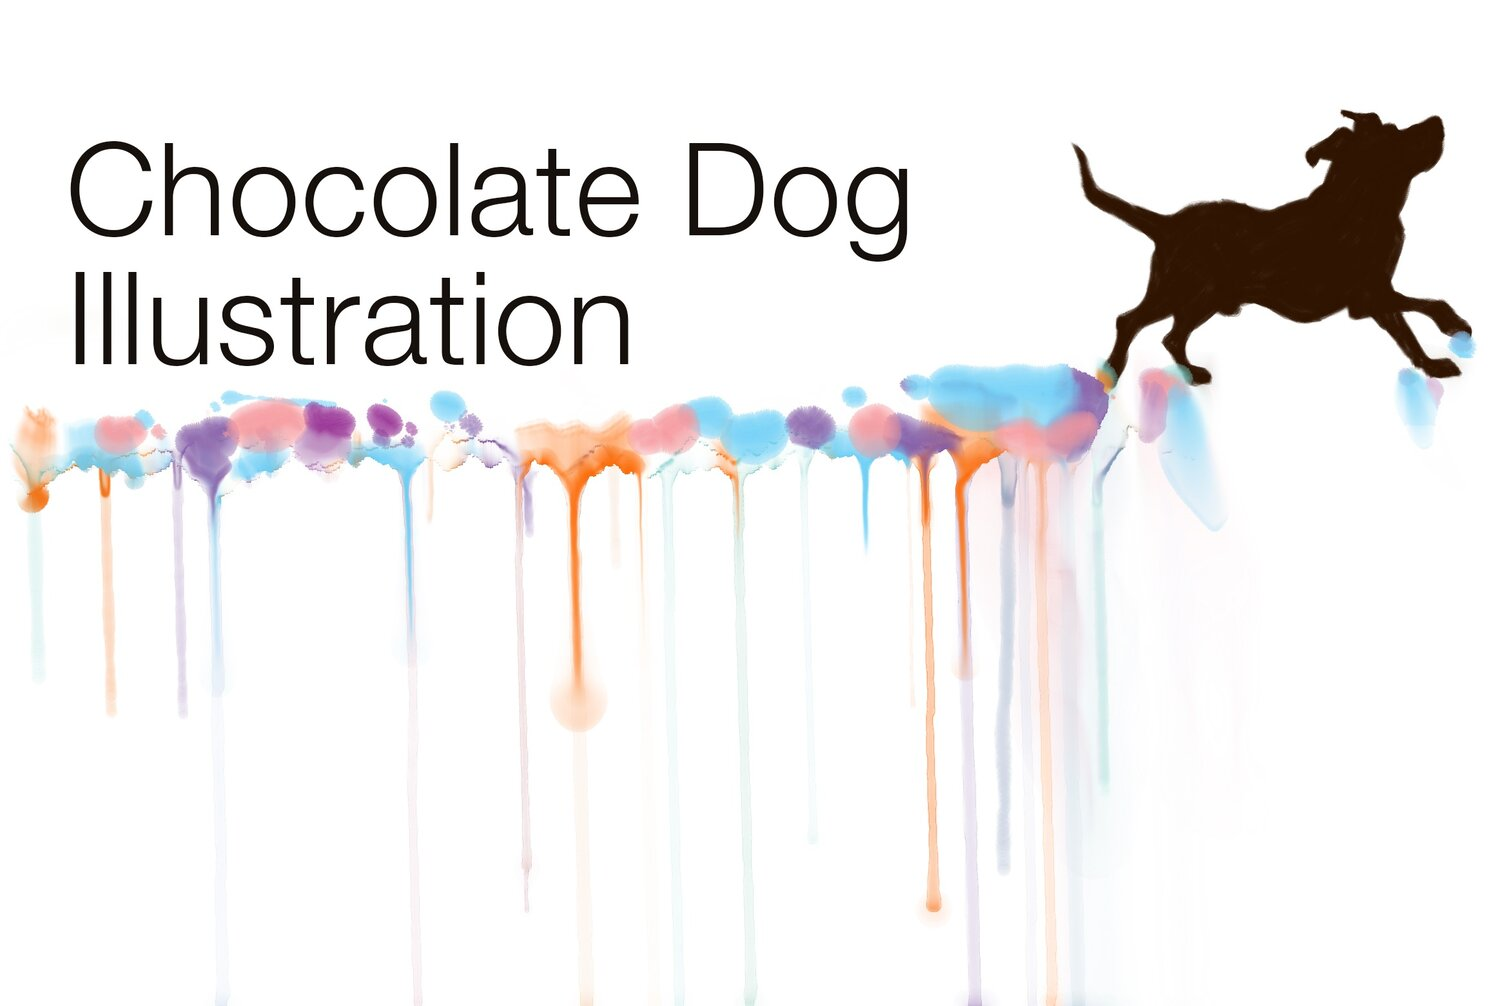 Chocolate Dog Illustration